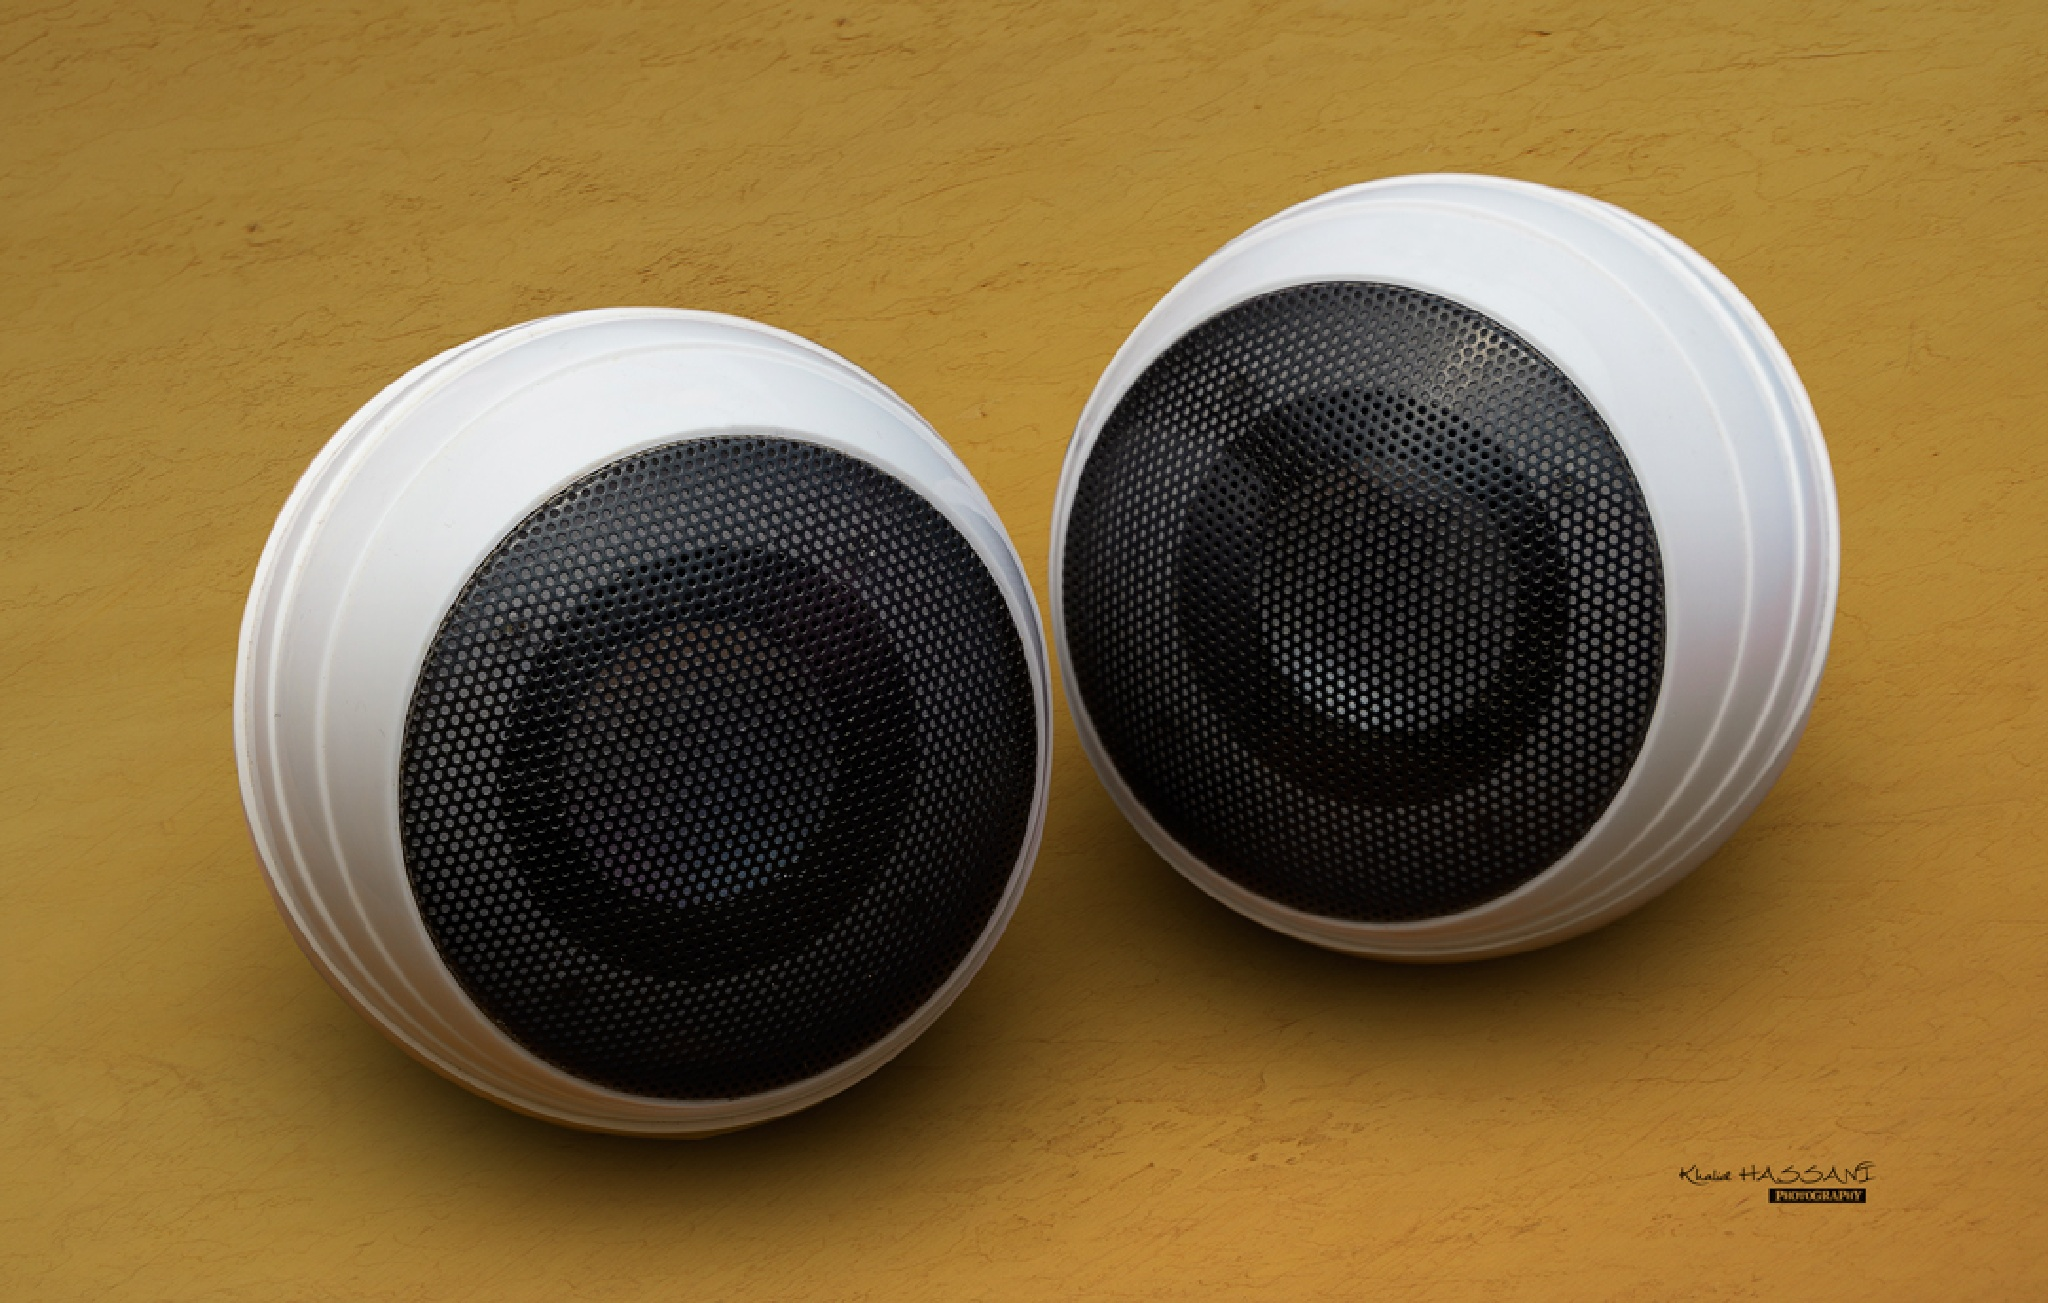 Speakers by Khalid Hassani